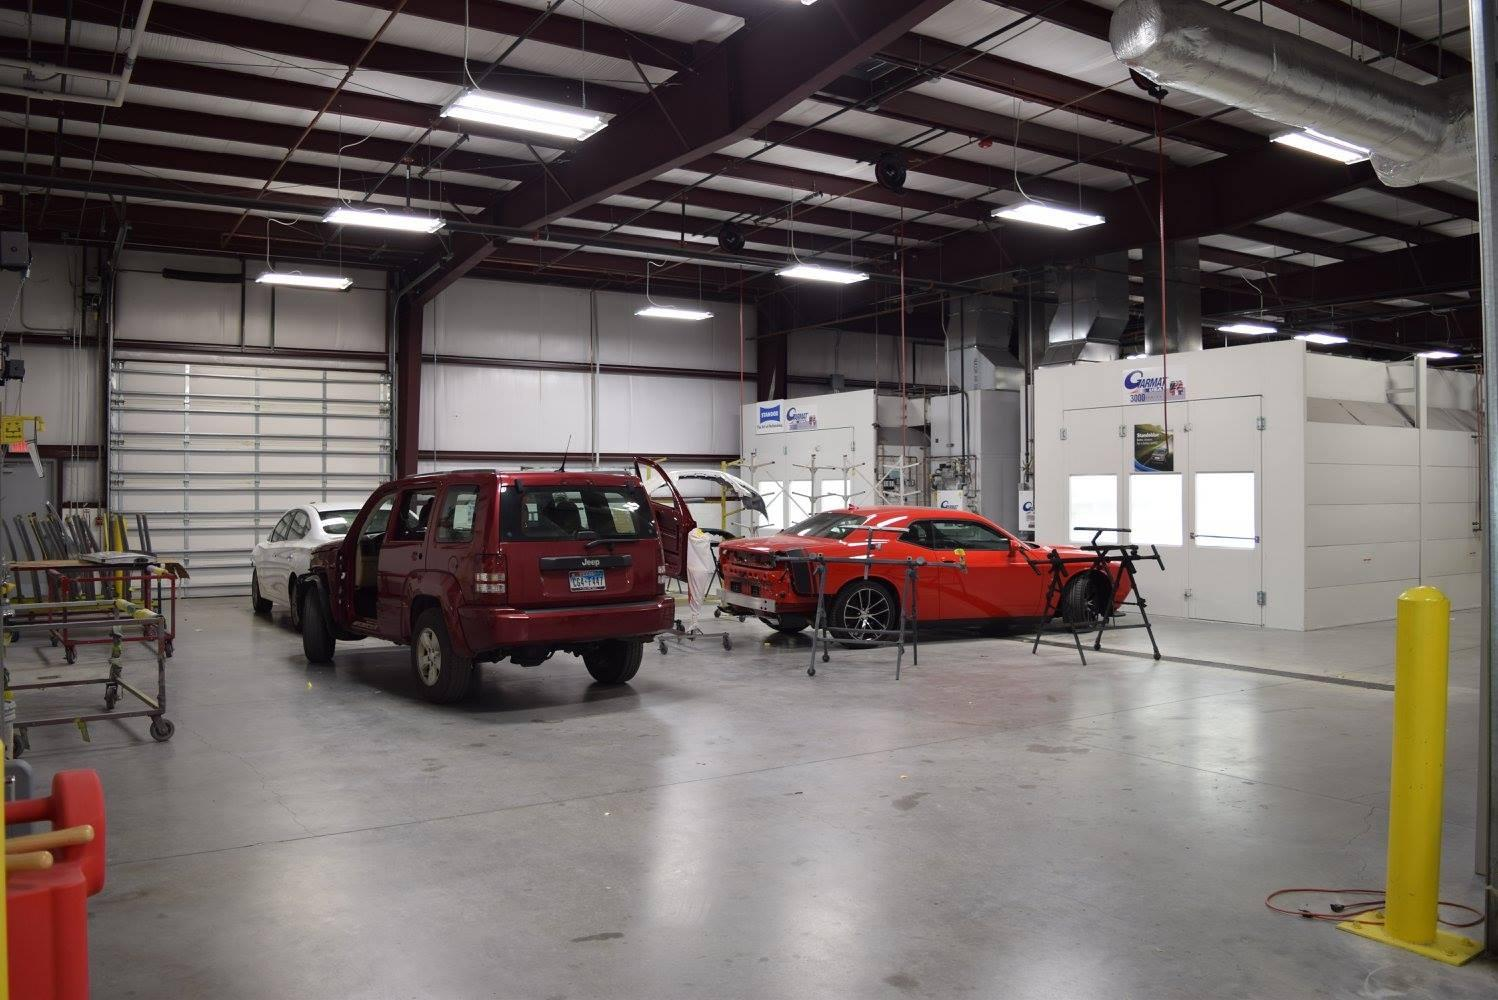 Mike Smith Collision Center image 9